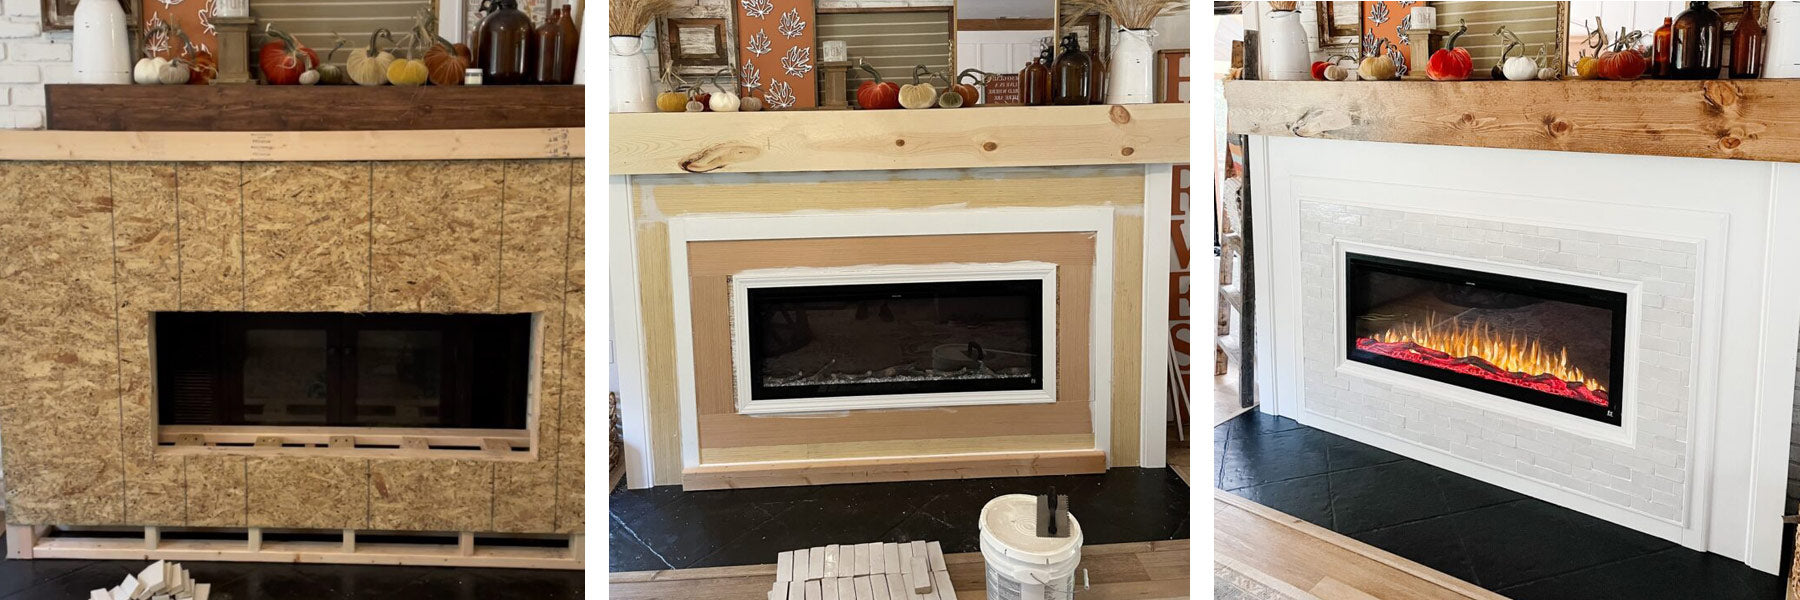 Progression of fireplace renovation by @redbrickfauxfarmhouse featuring Touchstone Sideline Elite Electric Fireplace